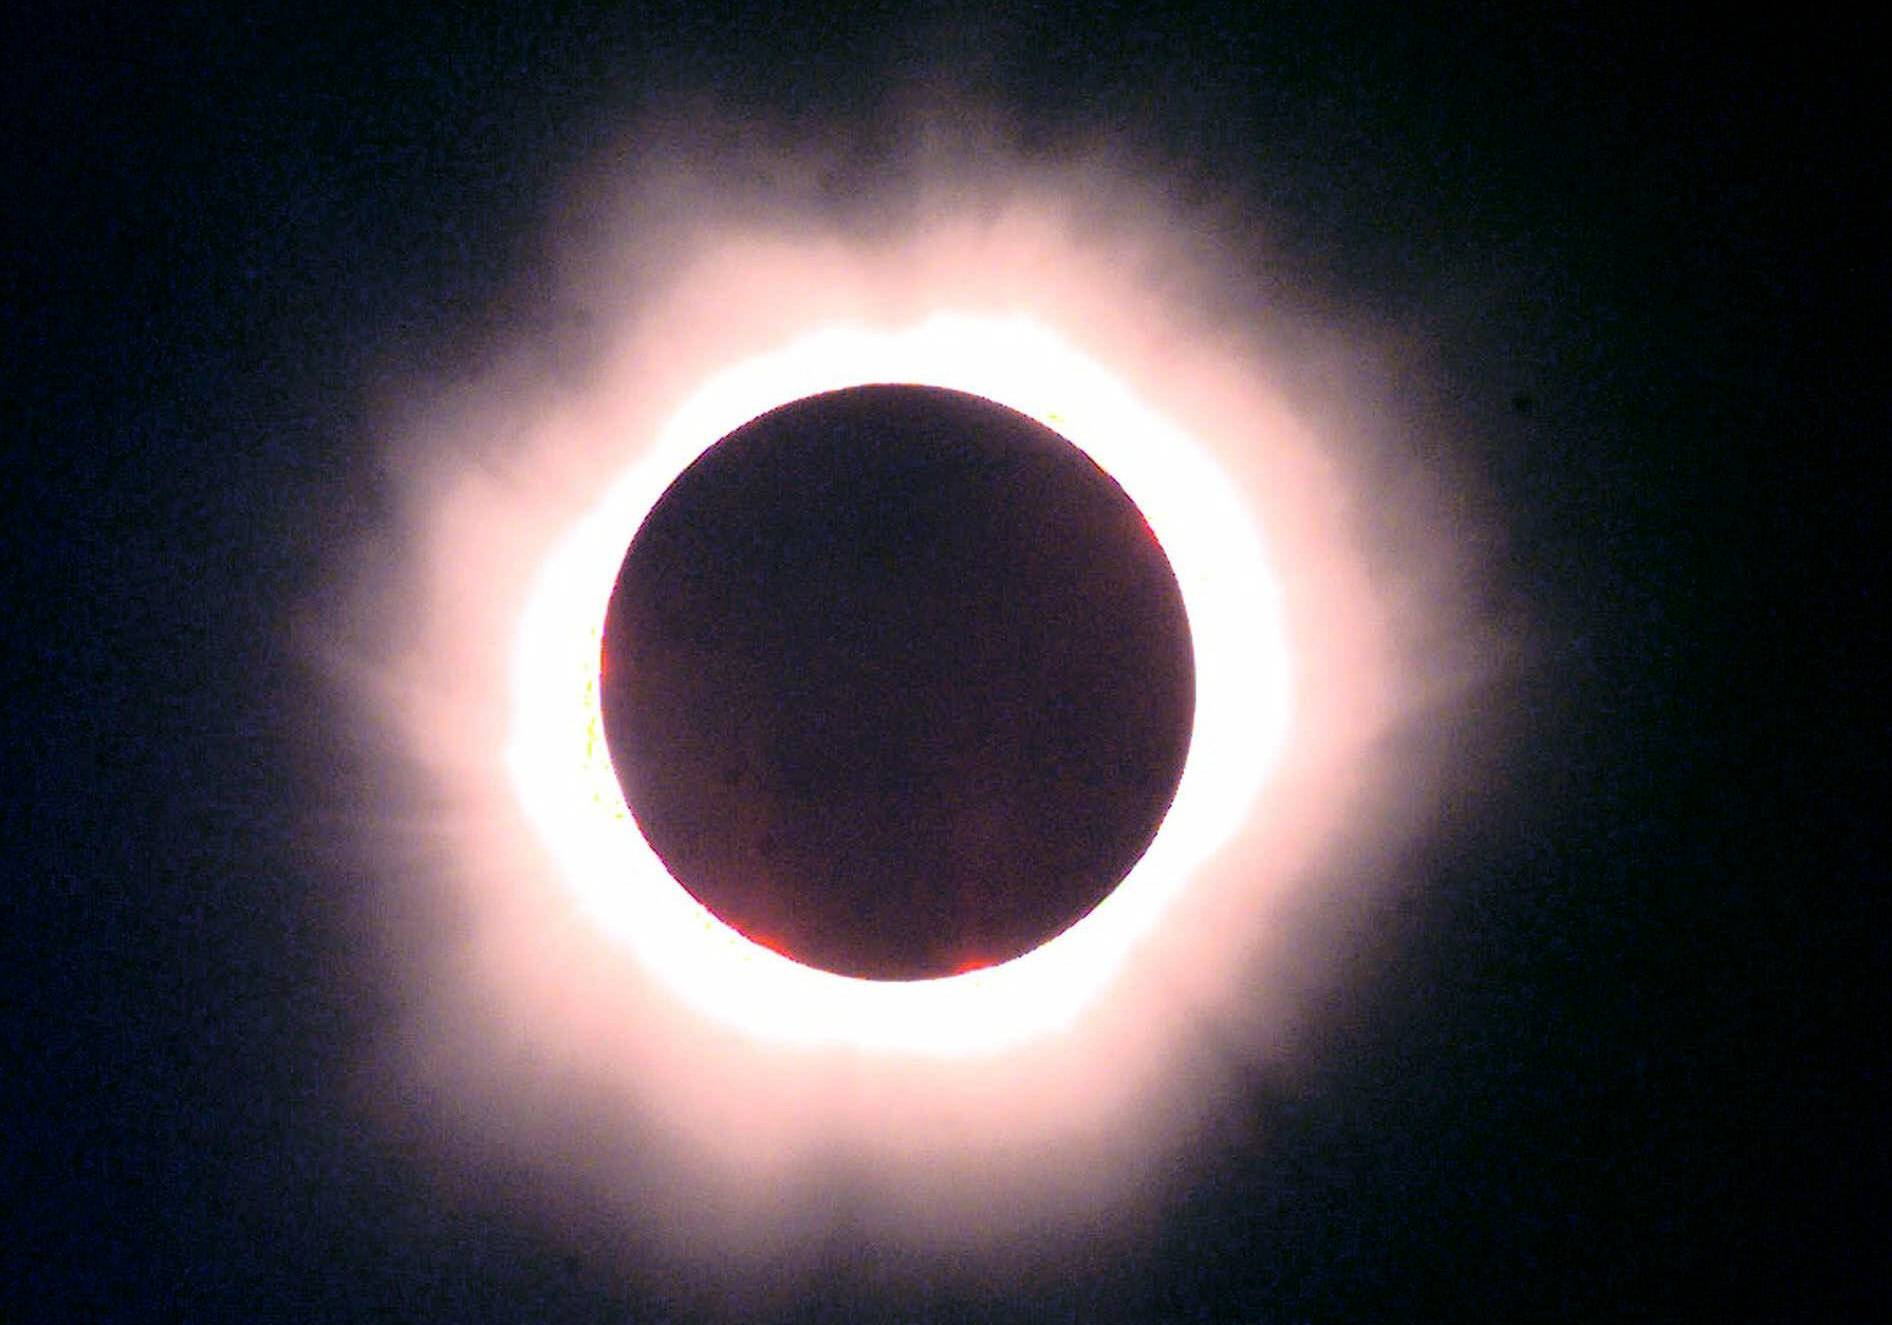 What time the eclipse will start in Chicago suburbs